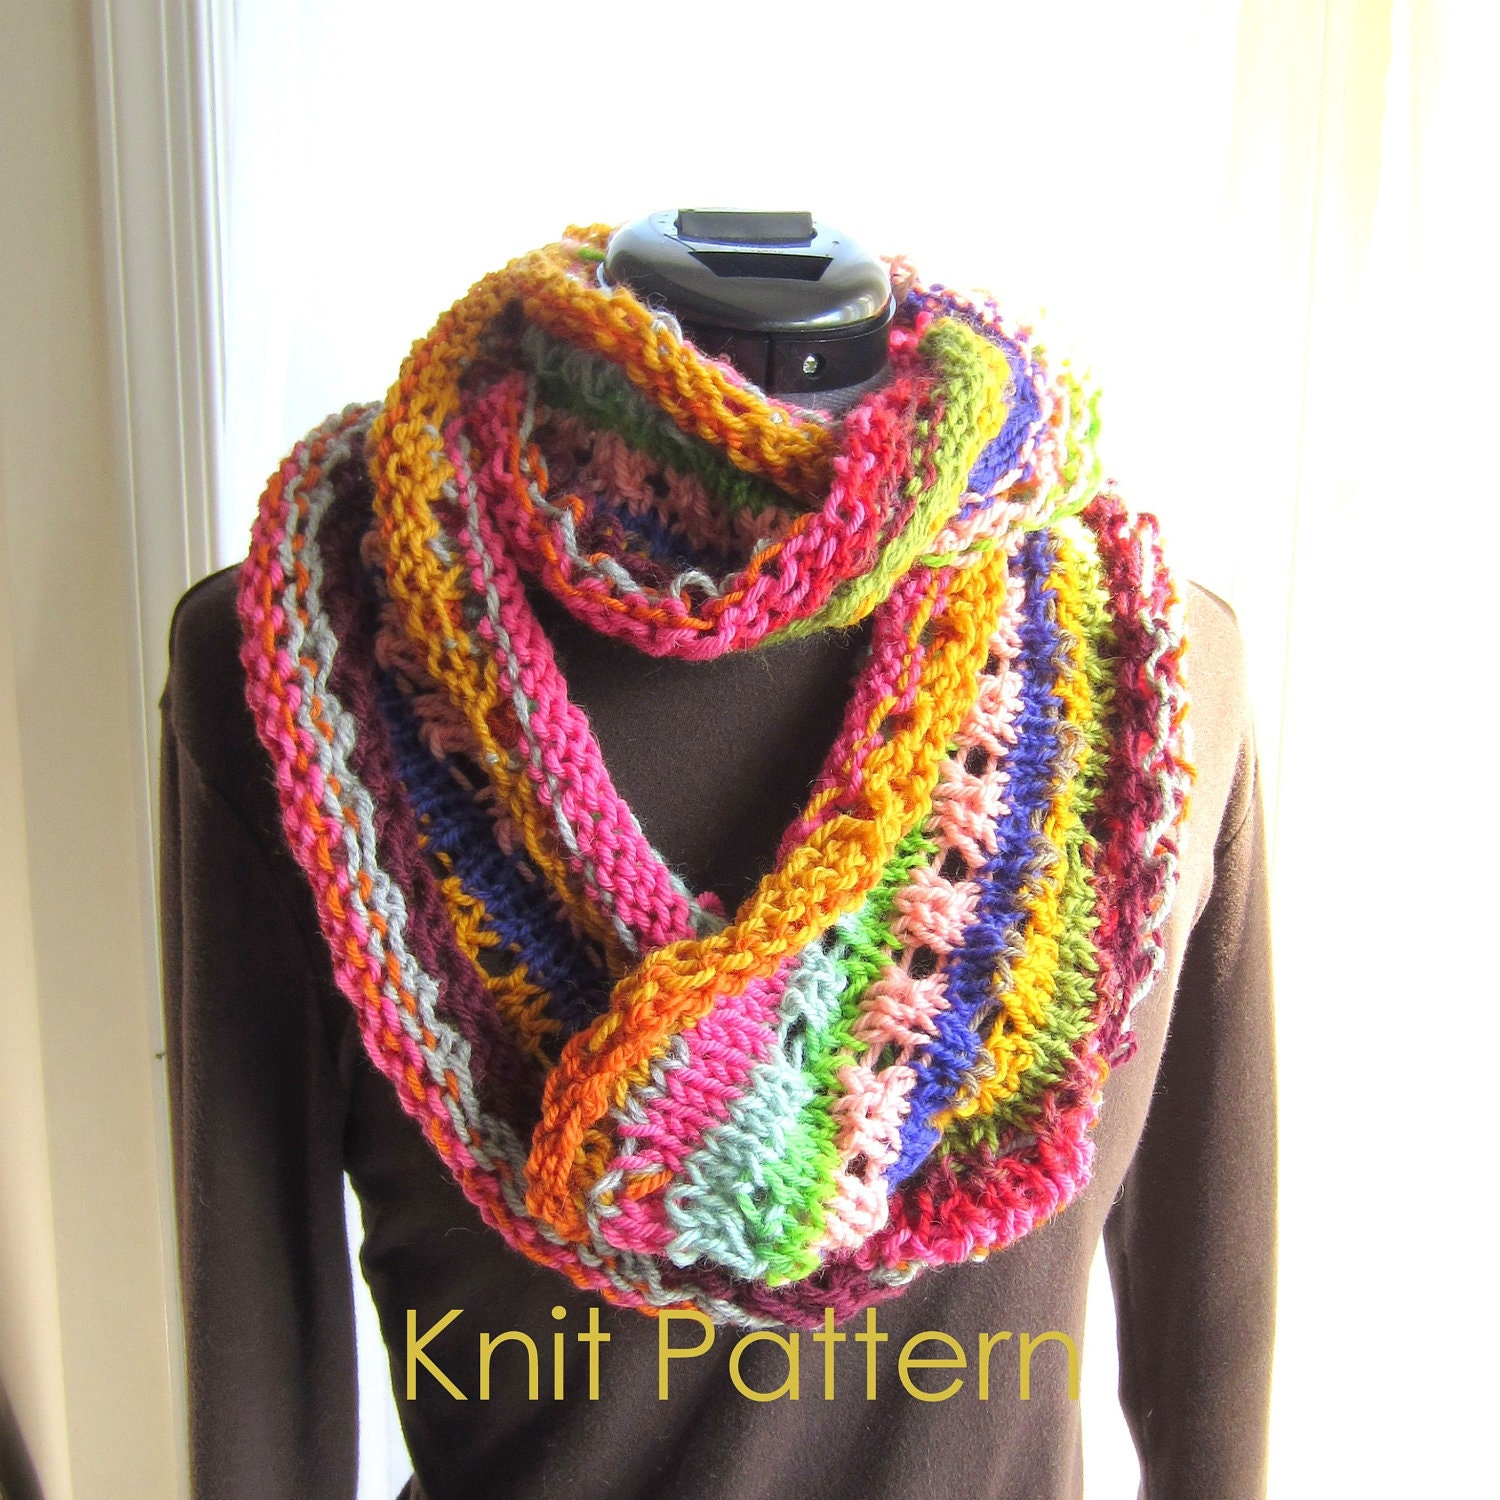 Simple Knitting Pattern For Infinity Scarf : Easy Knit Scarf Pattern Tutorial Infinity by GraceKnittingPattern